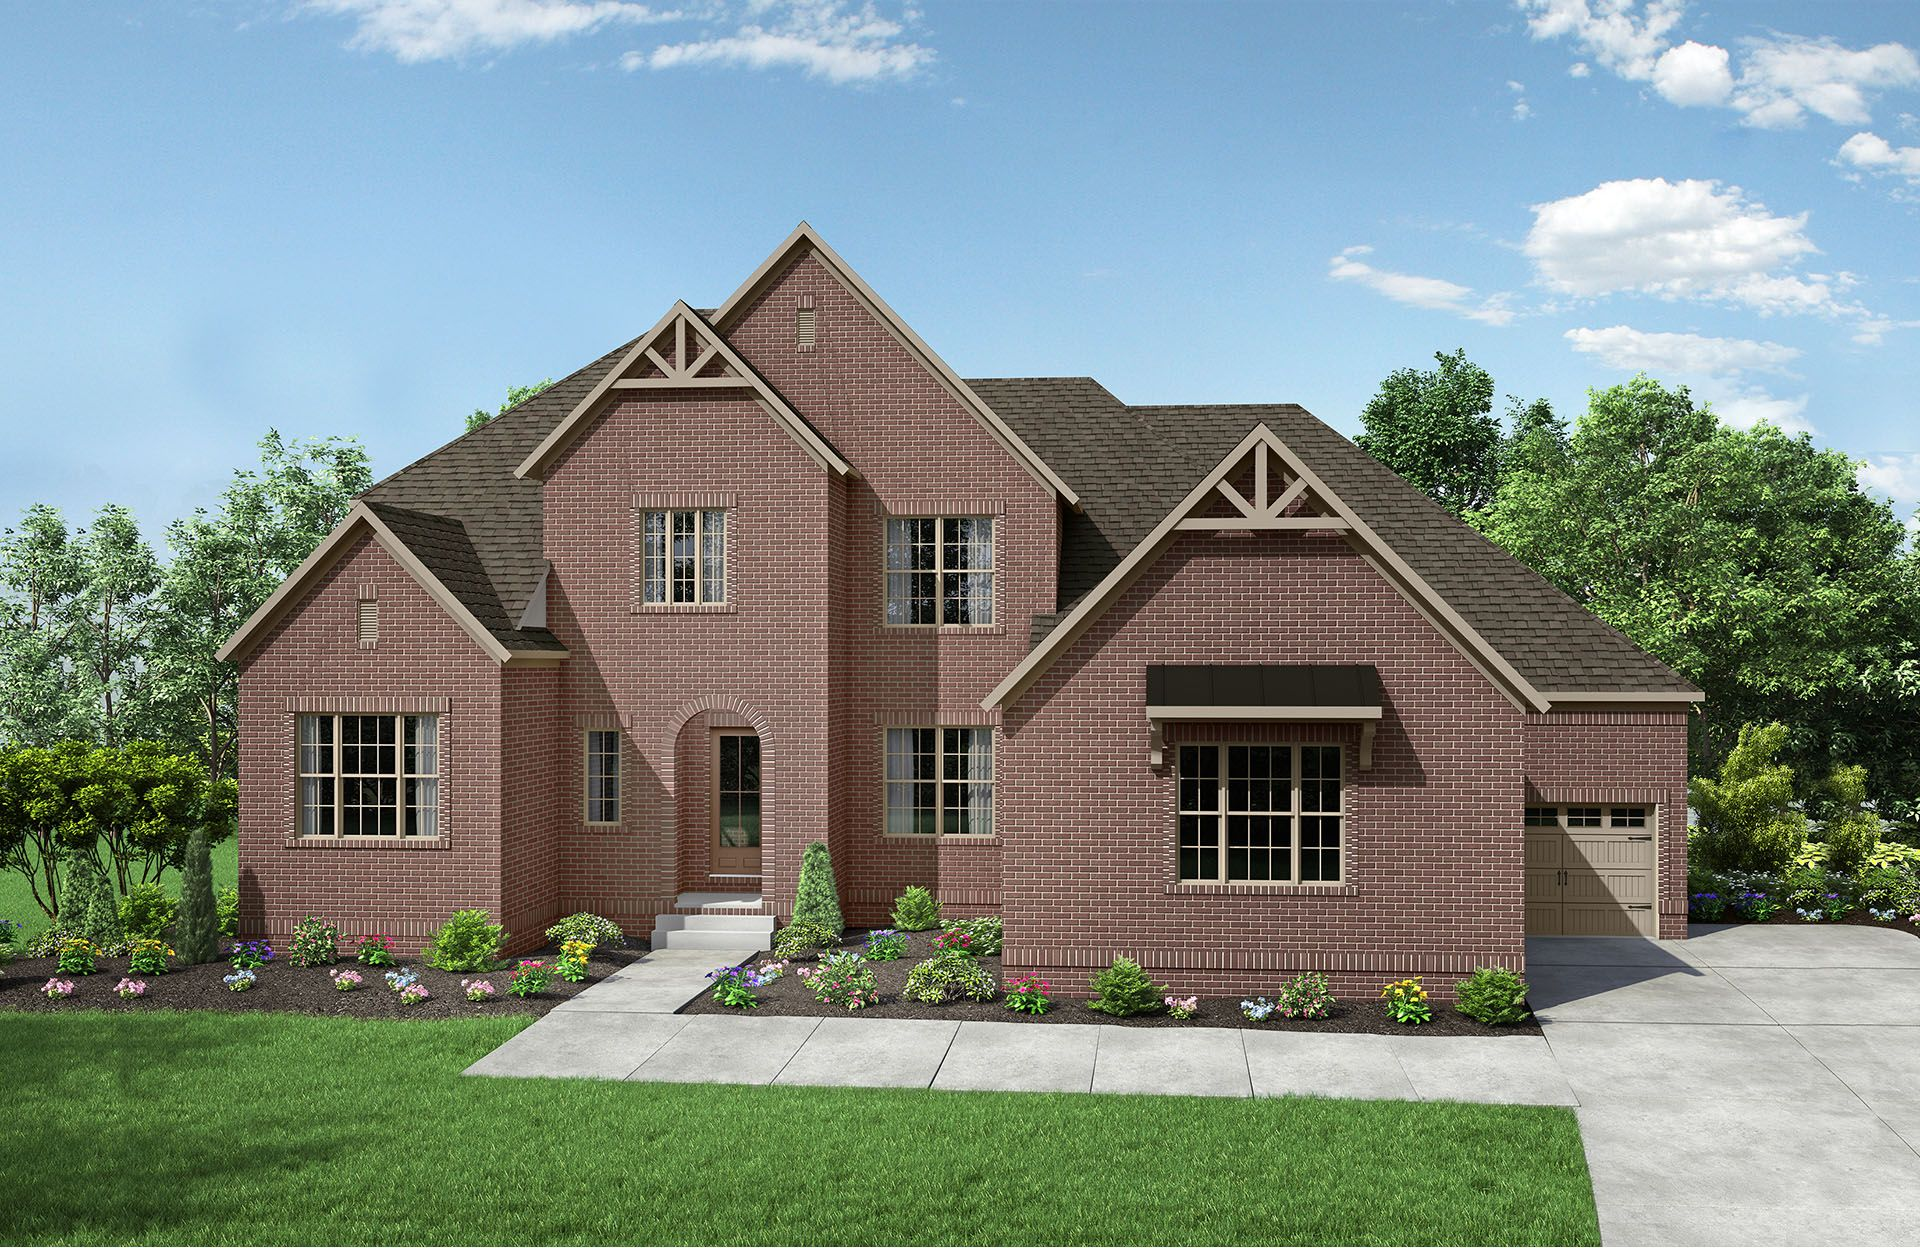 Single Family for Active at Asher - Morrison 108 Telfair Lane Nolensville, Tennessee 37135 United States